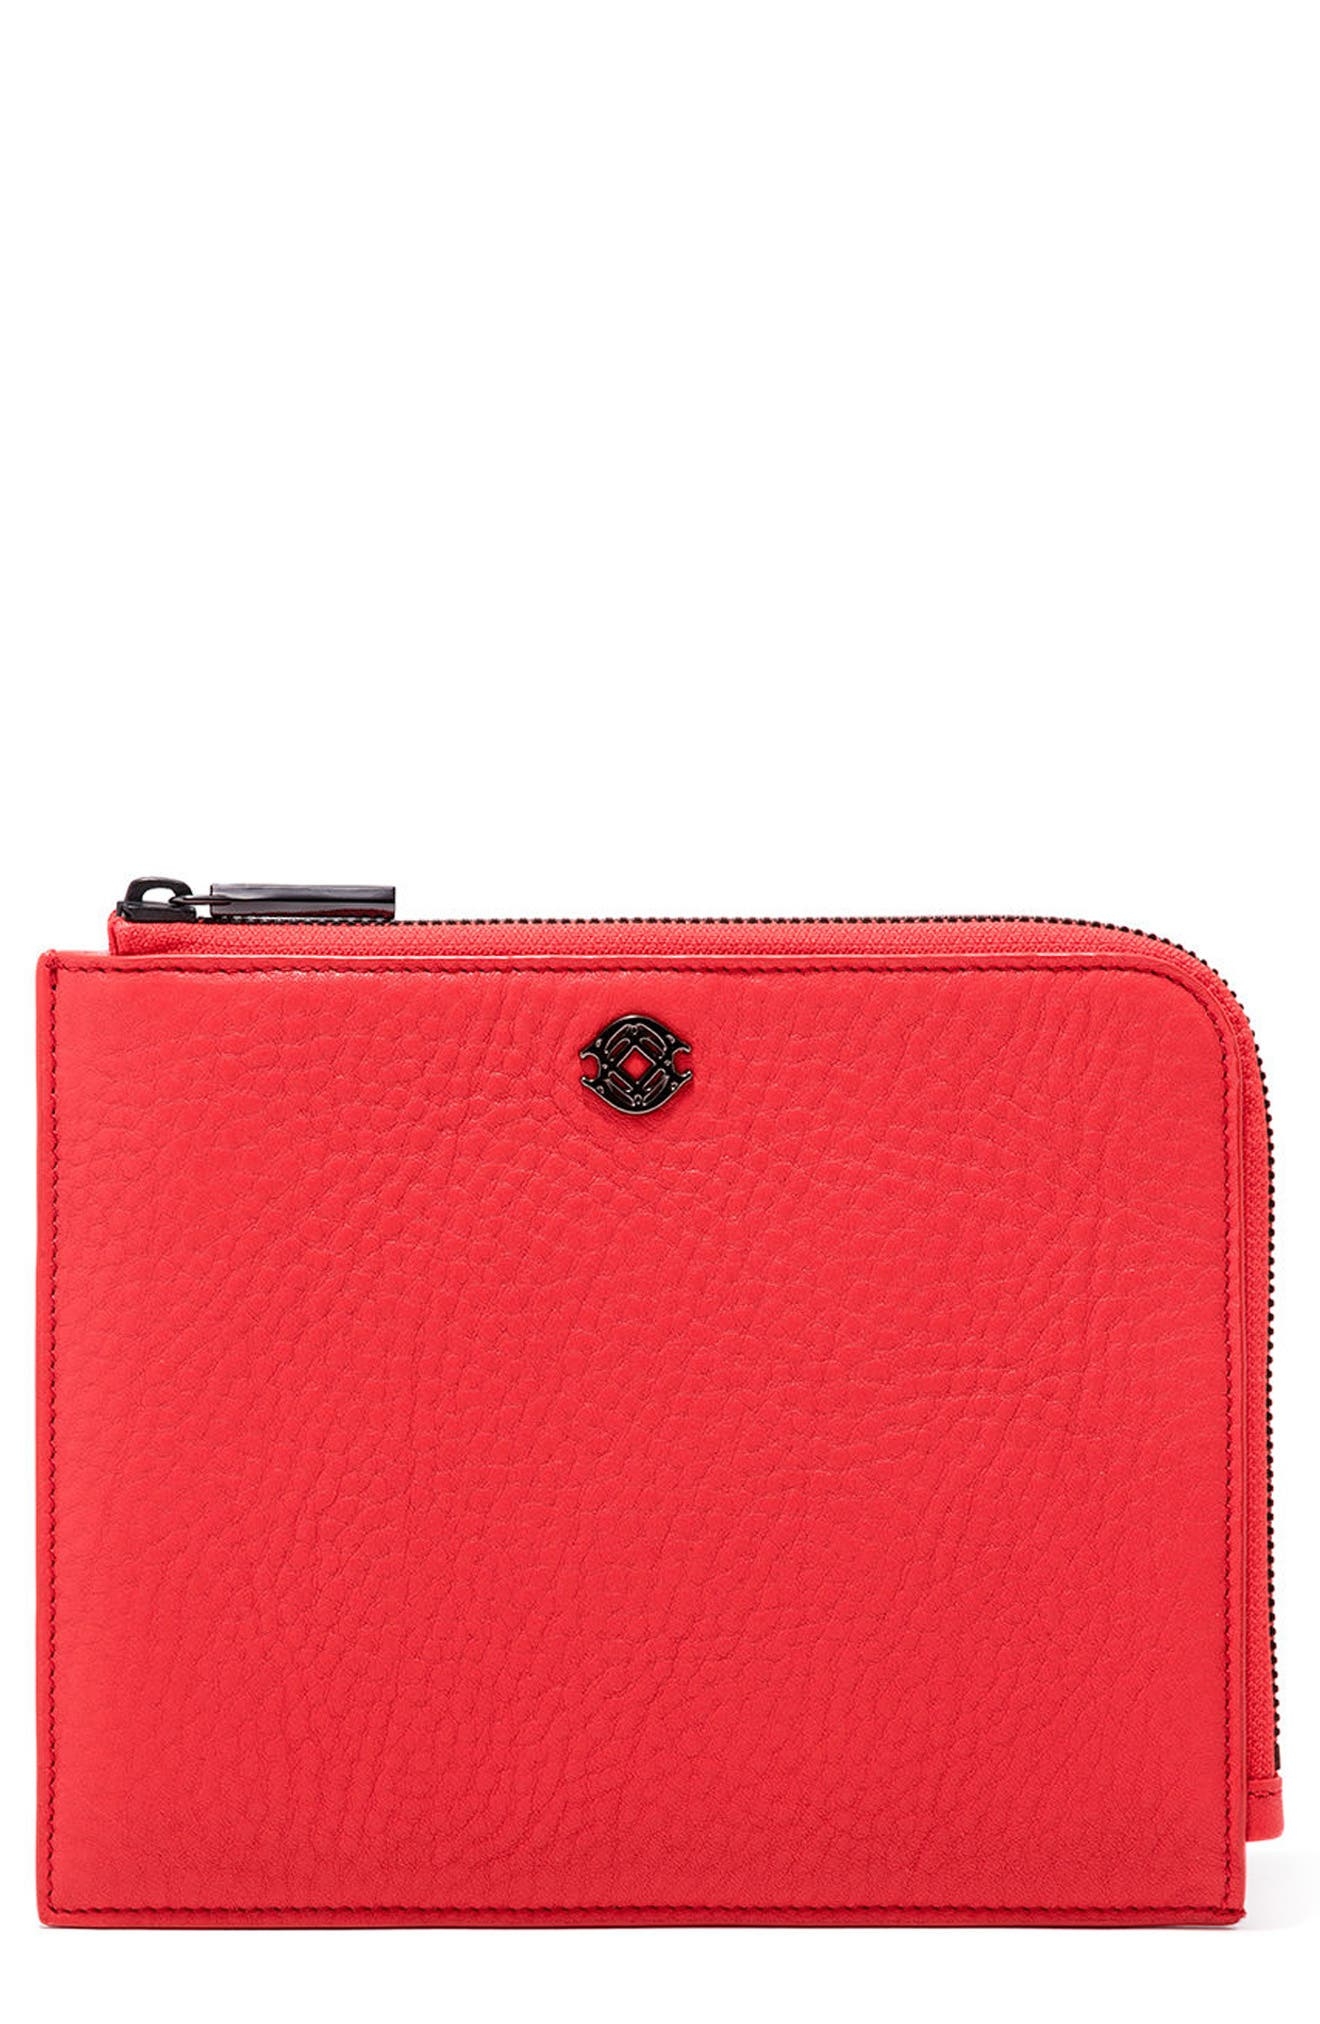 Main Image - Dagne Dover Small Elle Leather Clutch